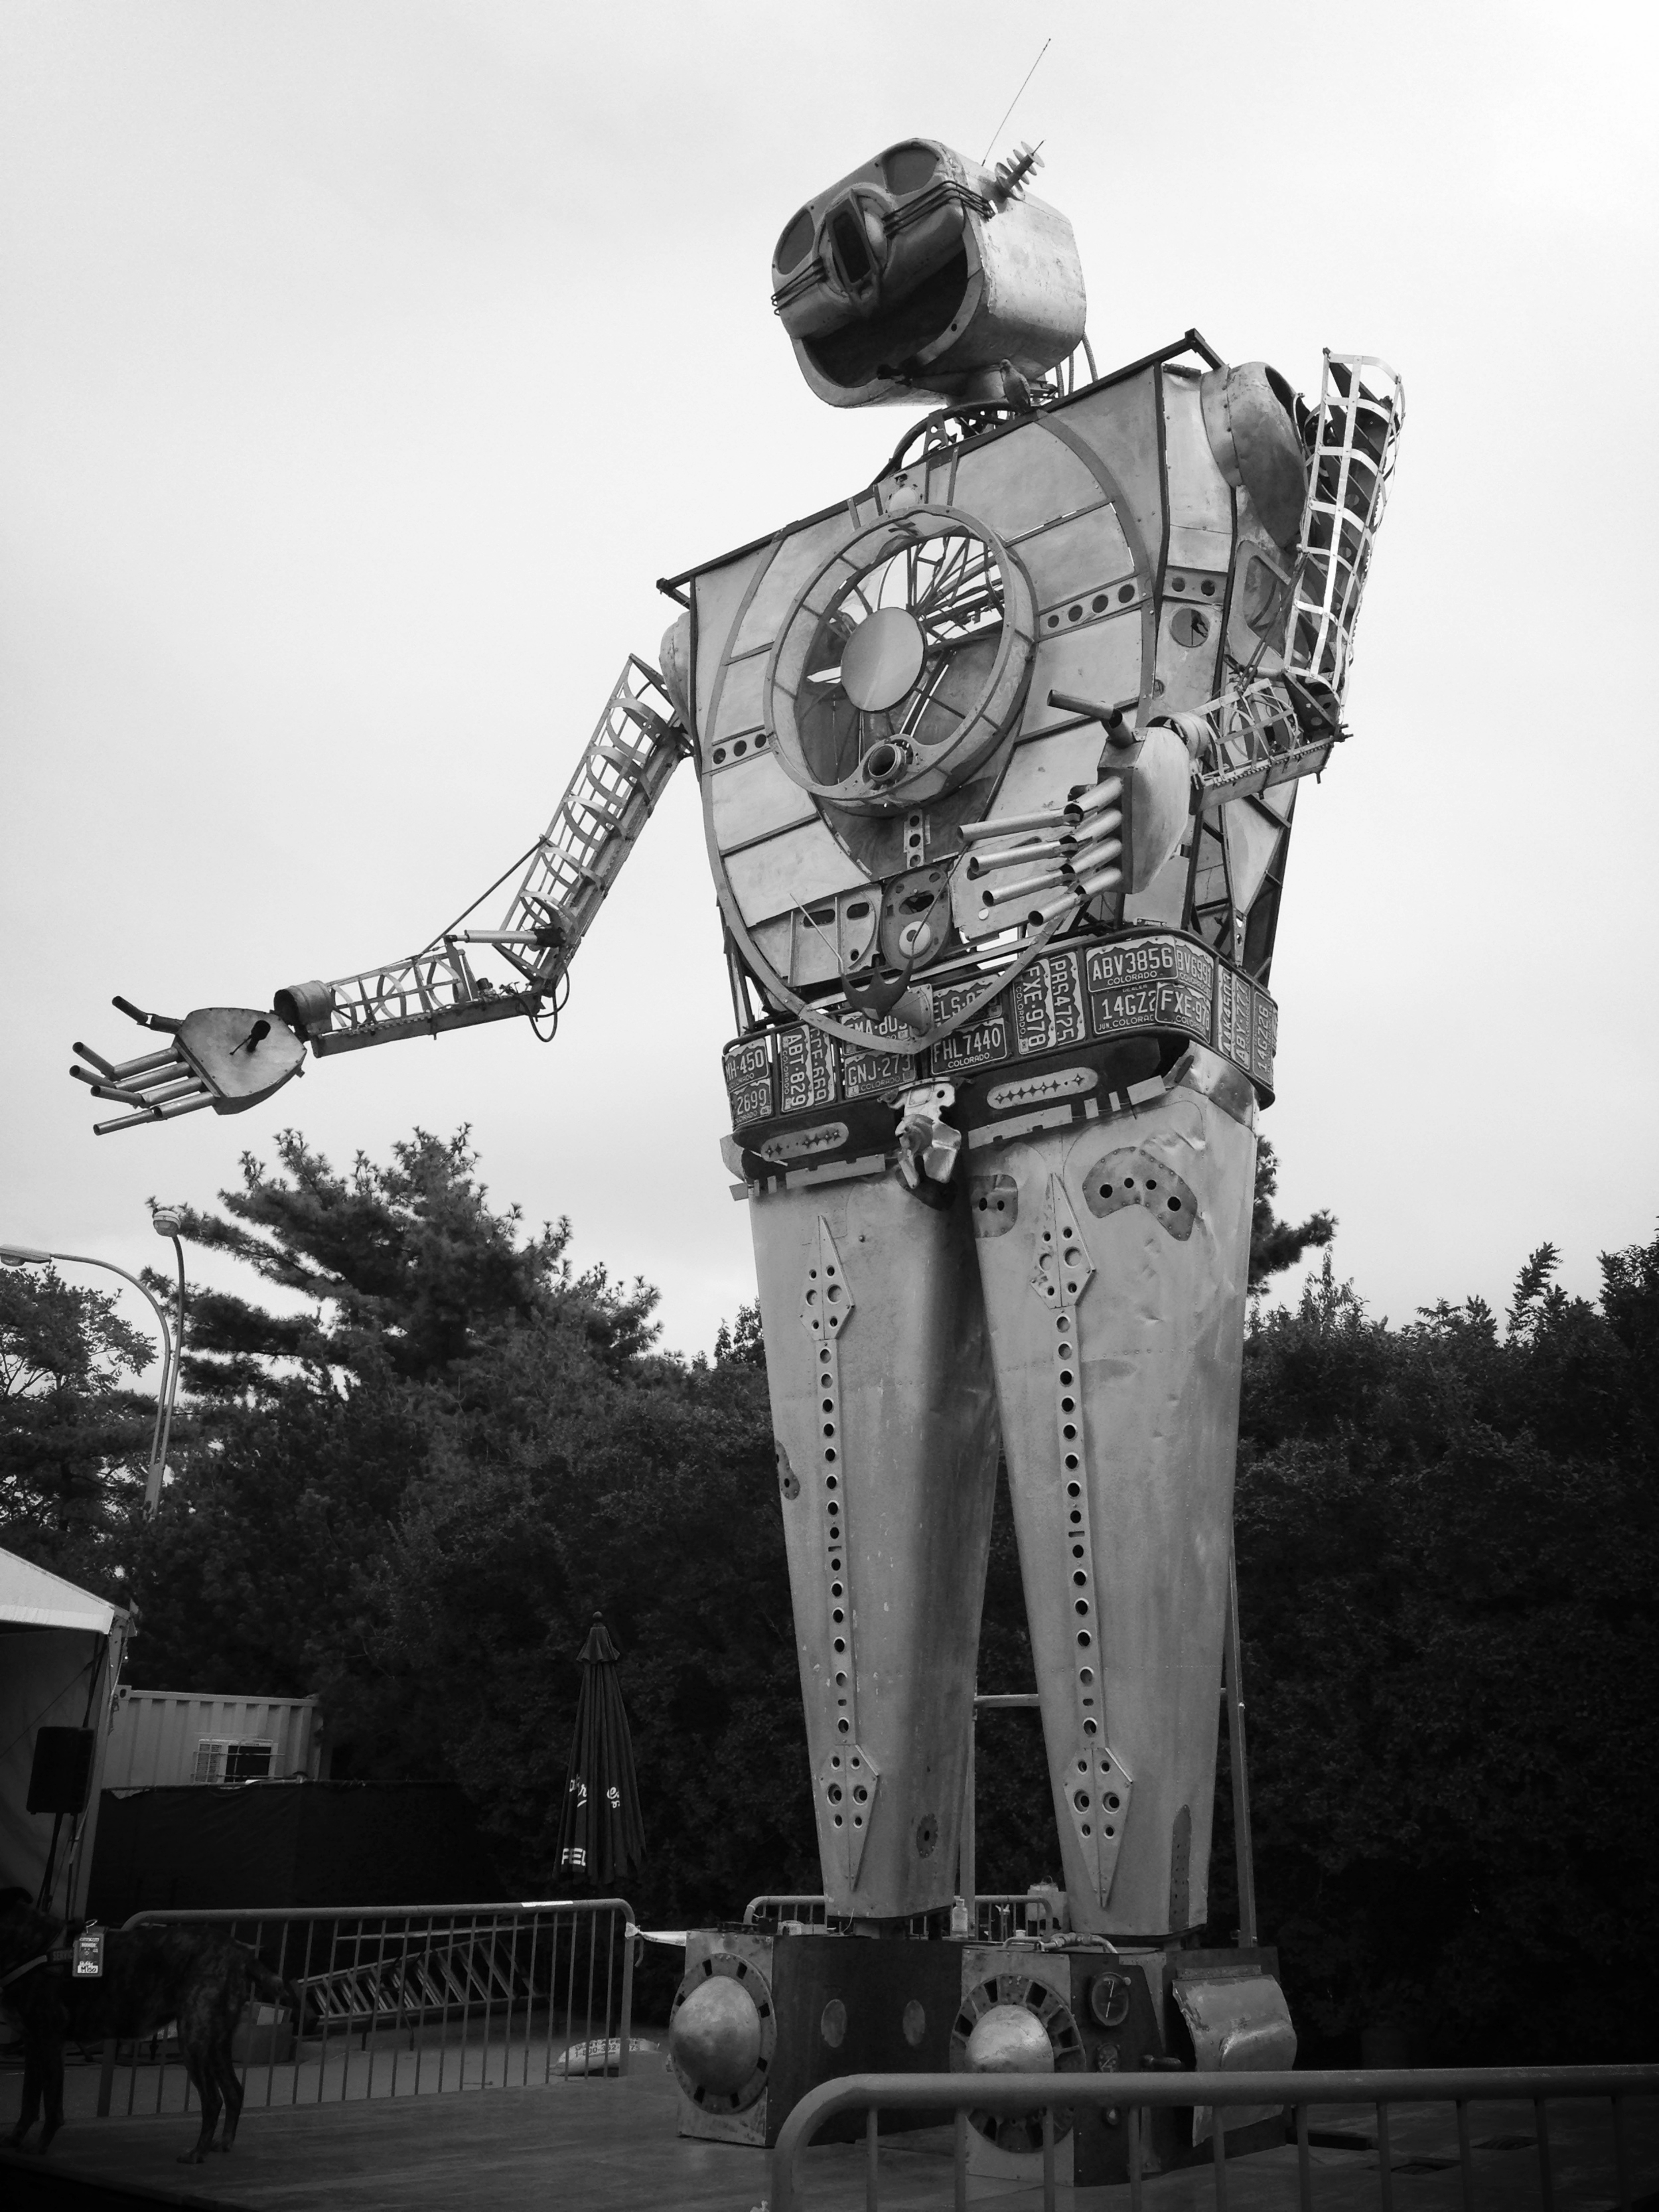 this awesome robot dude was at MakerFaire